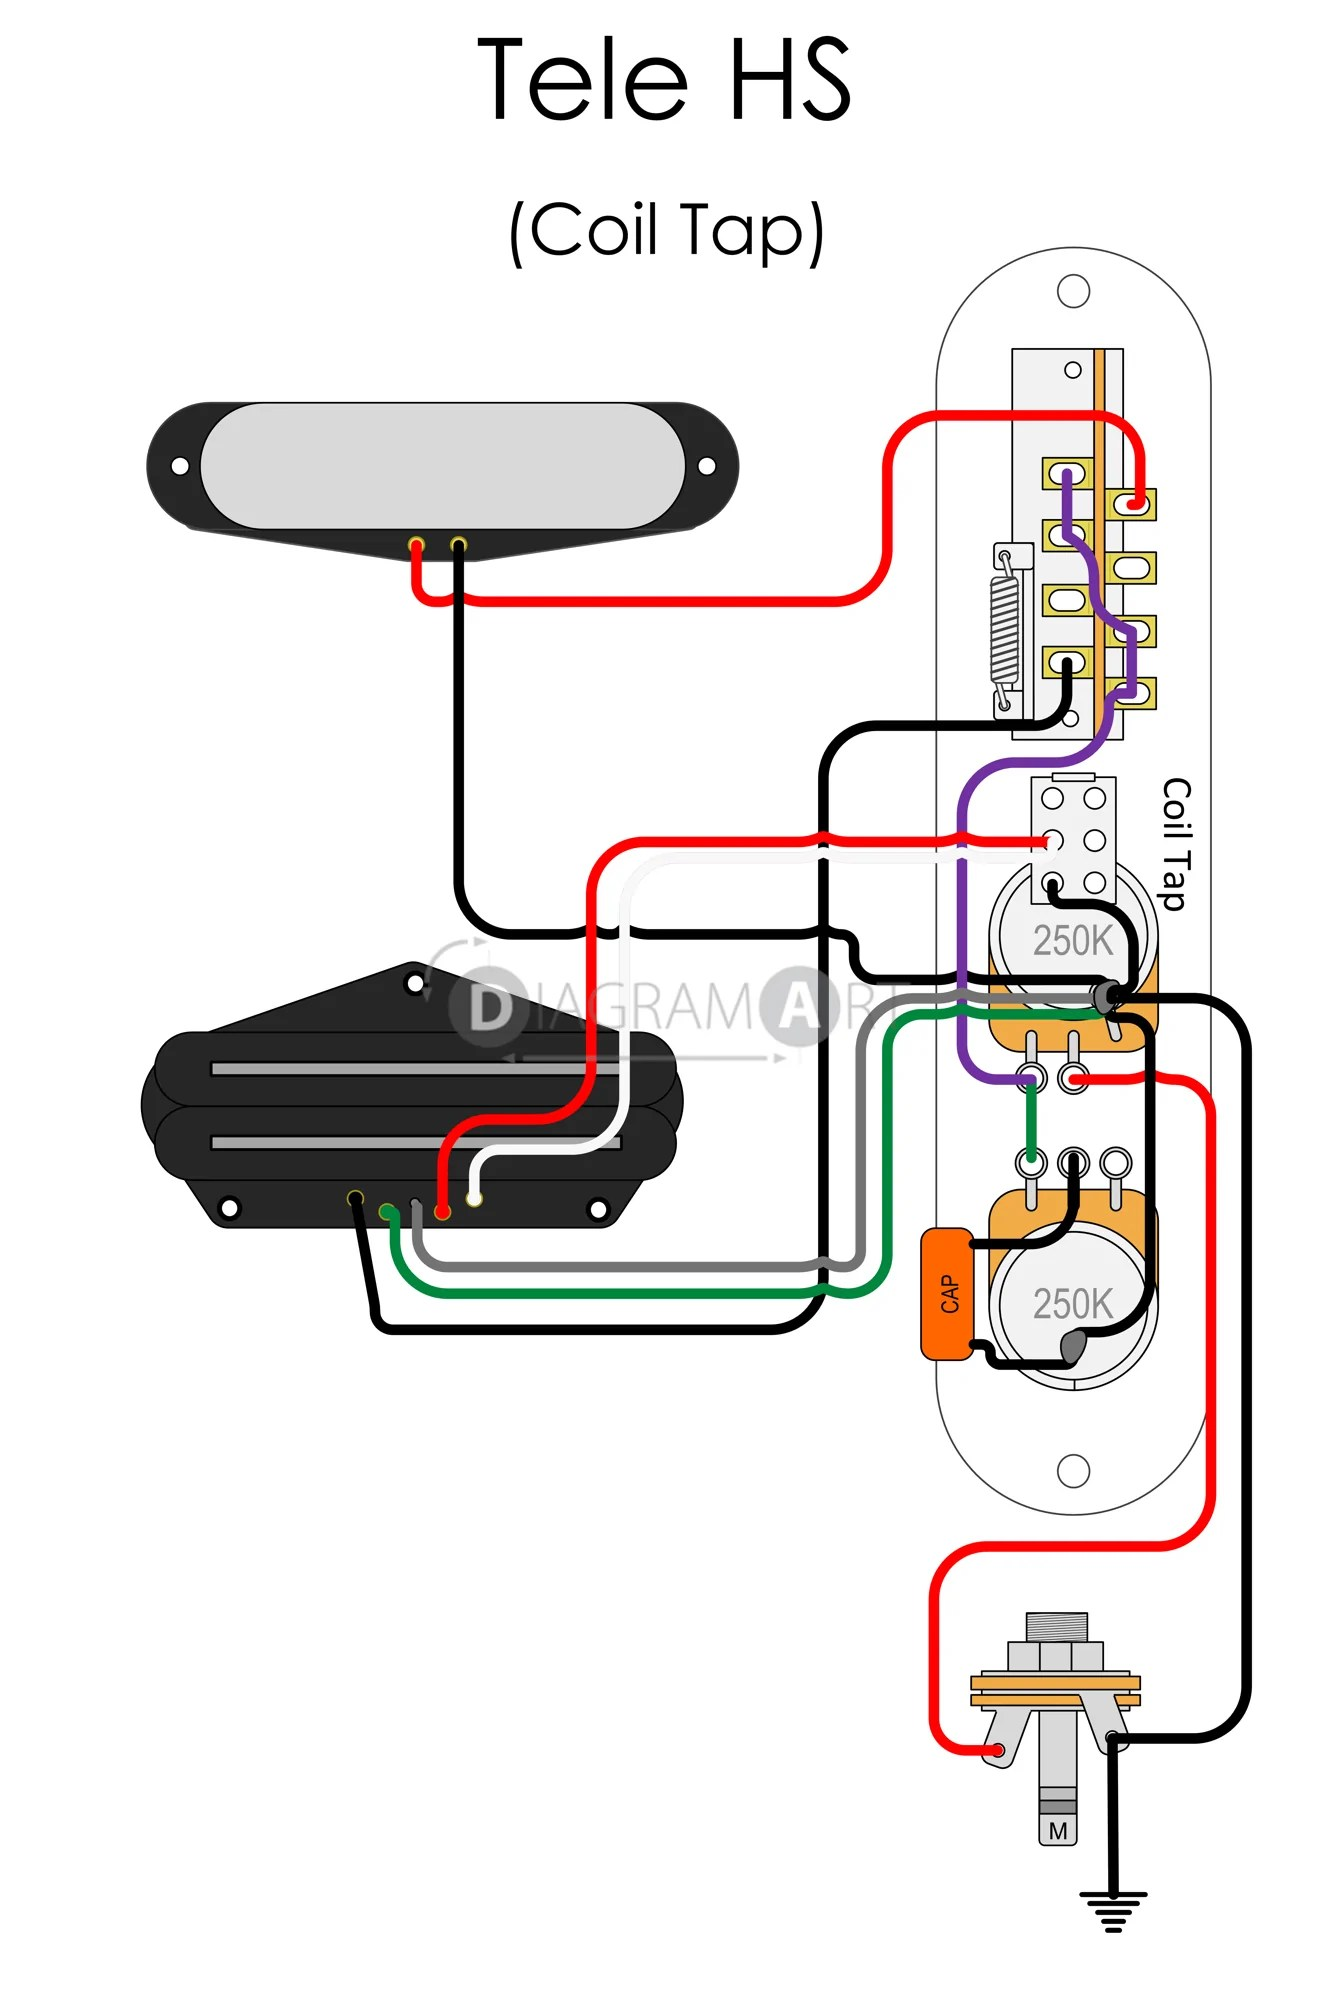 hight resolution of electric guitar wiring tele hs coil tap electric circuit push pull coil tap diagram coil tap diagram